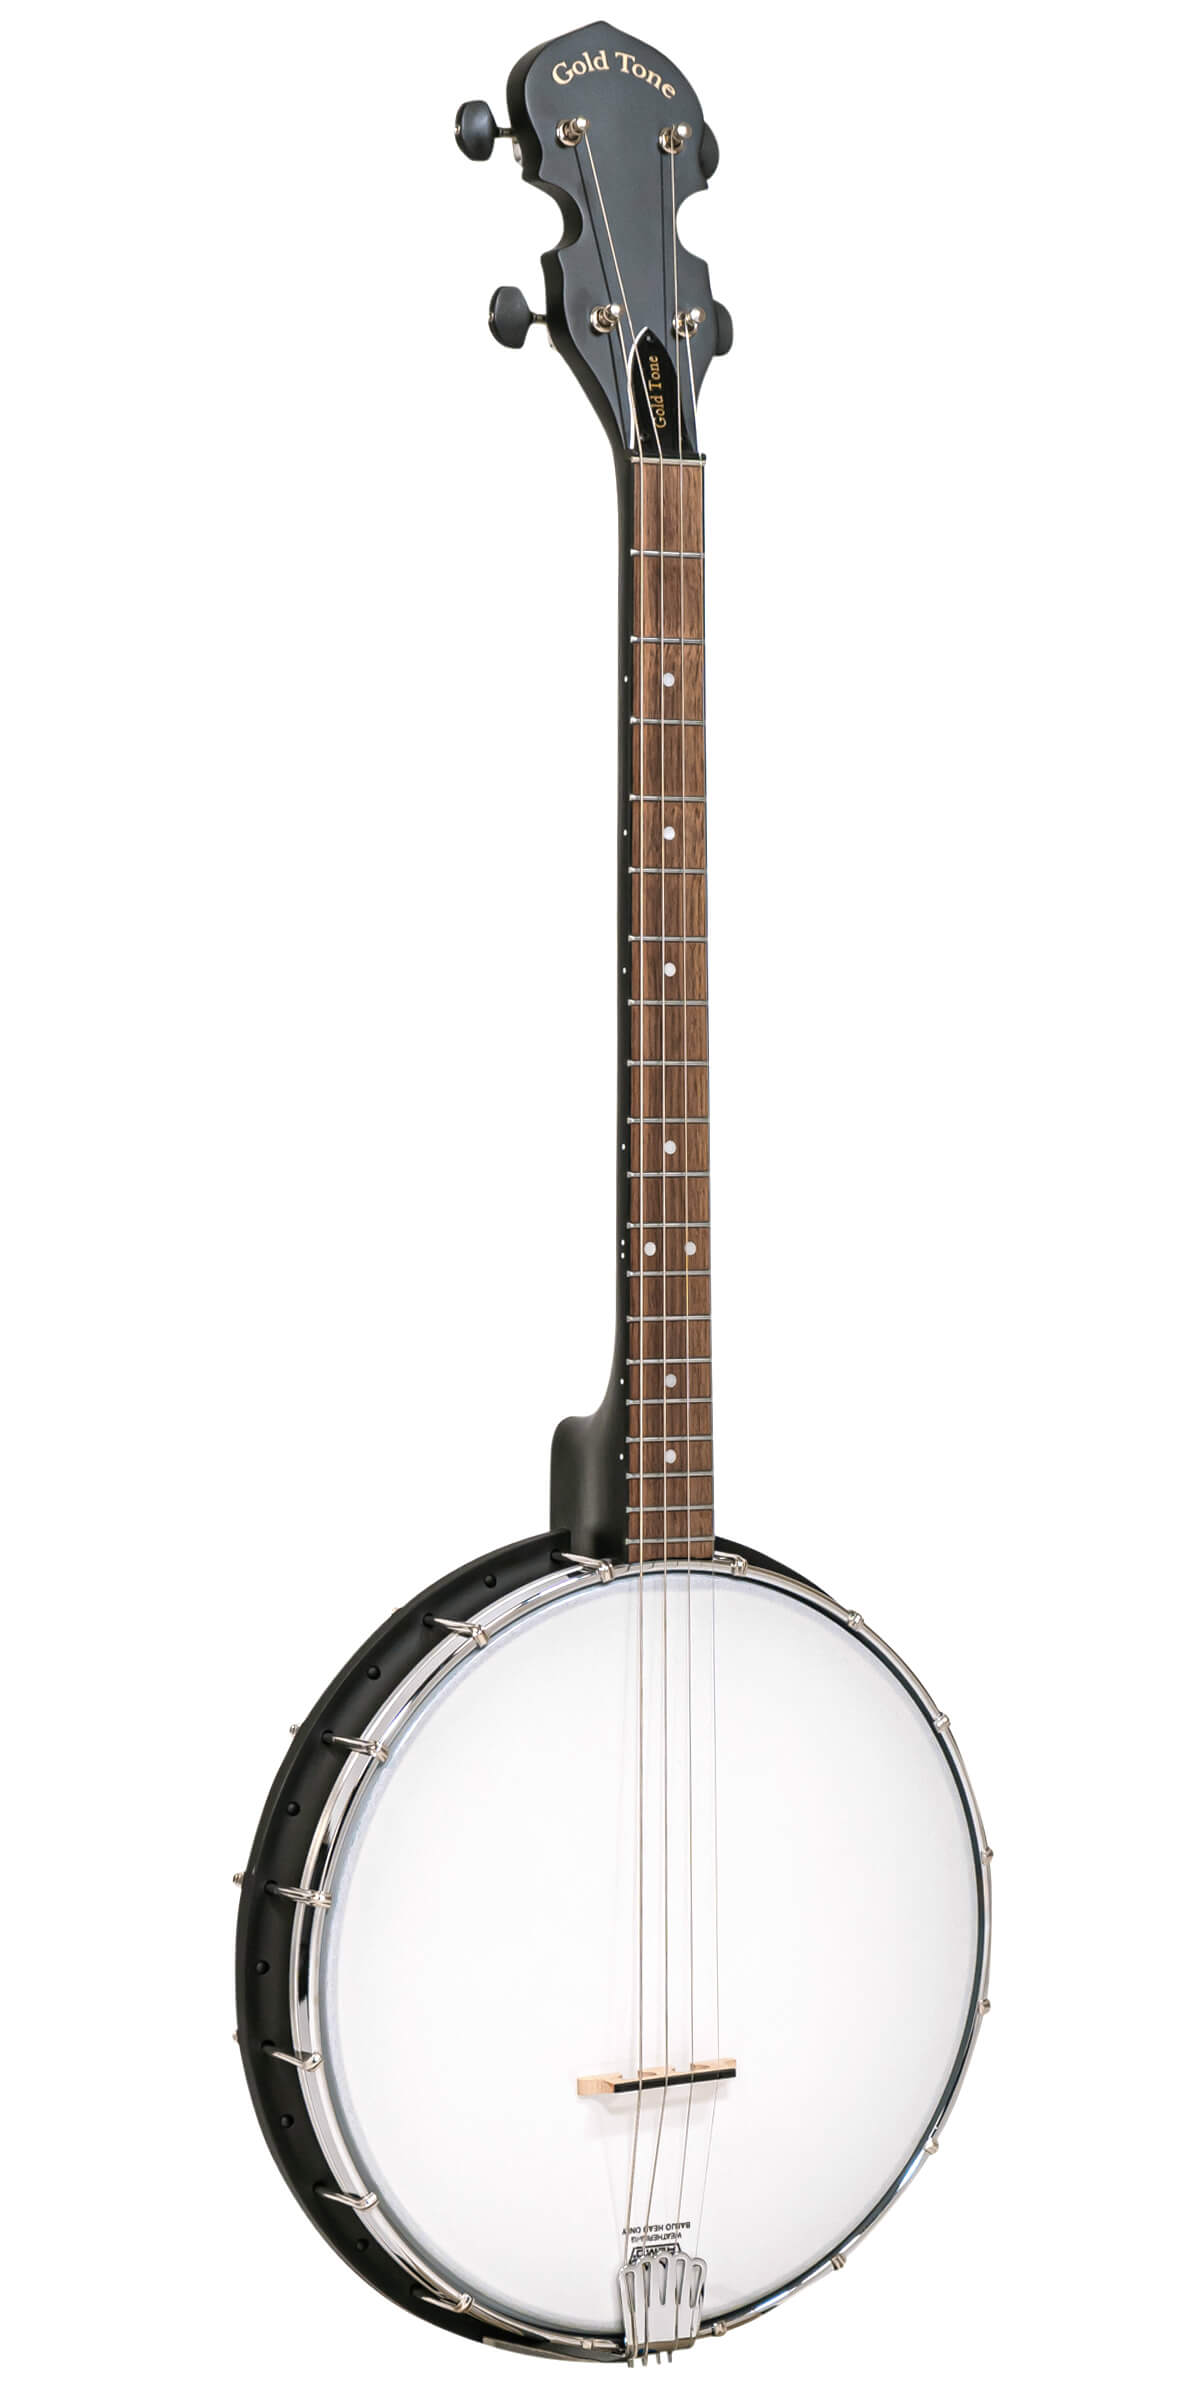 AC-4 IT: Acoustic Composite Irish Tenor Banjo